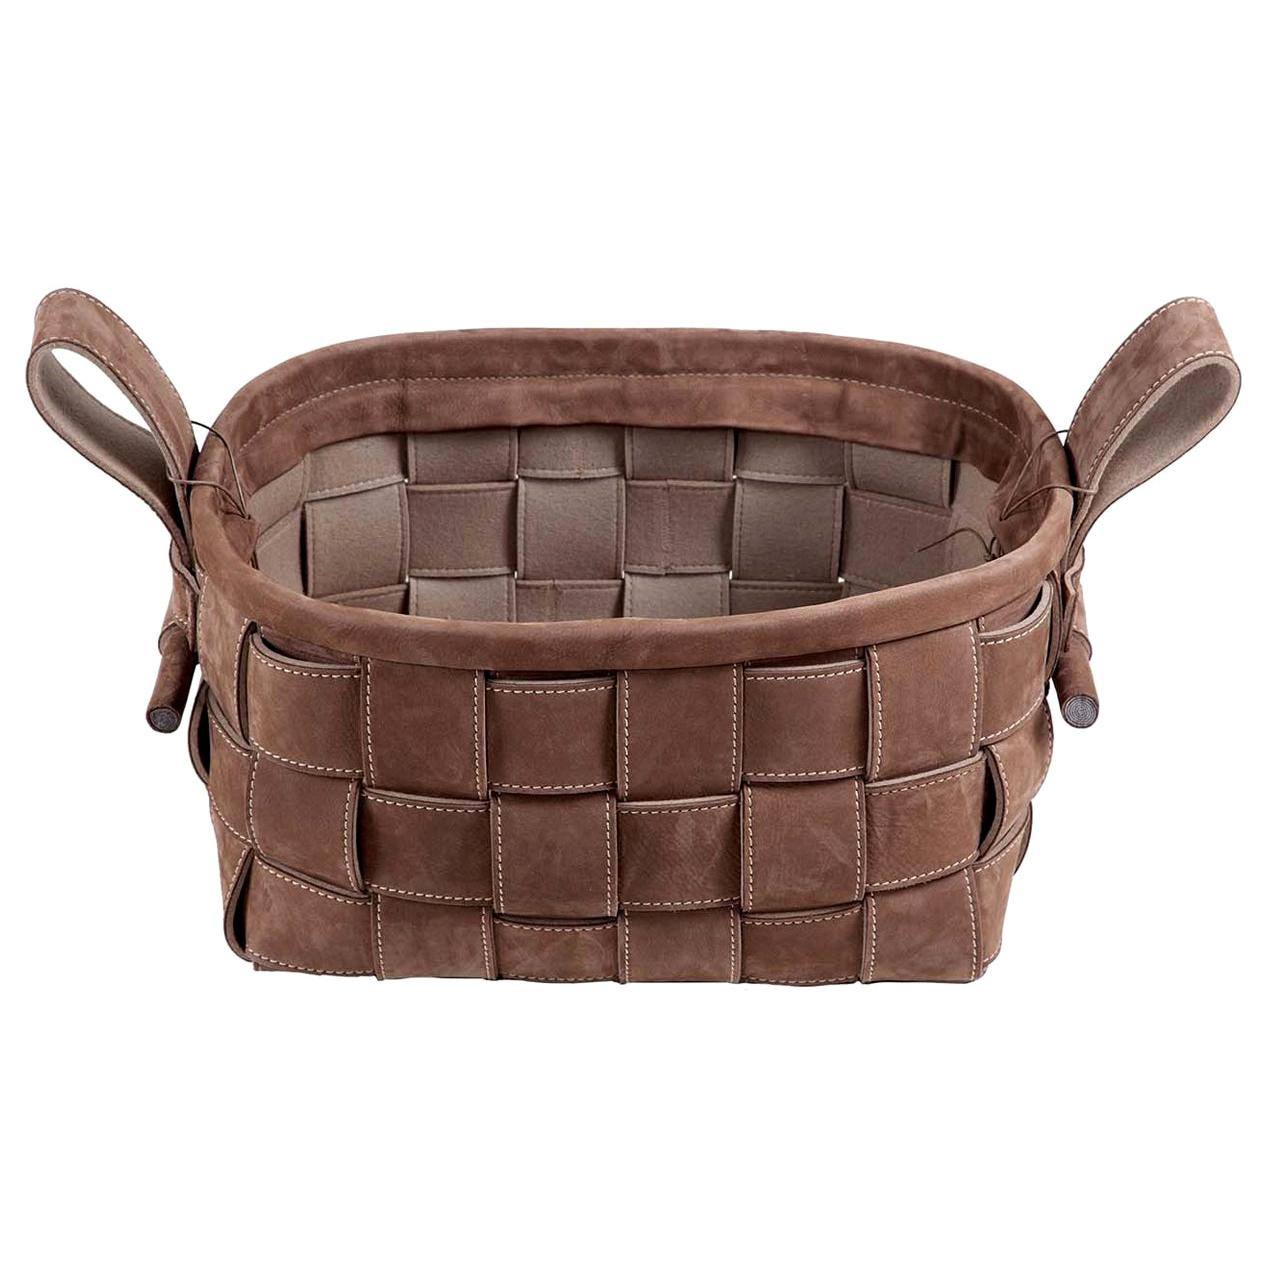 Woven Leather Basket Brown